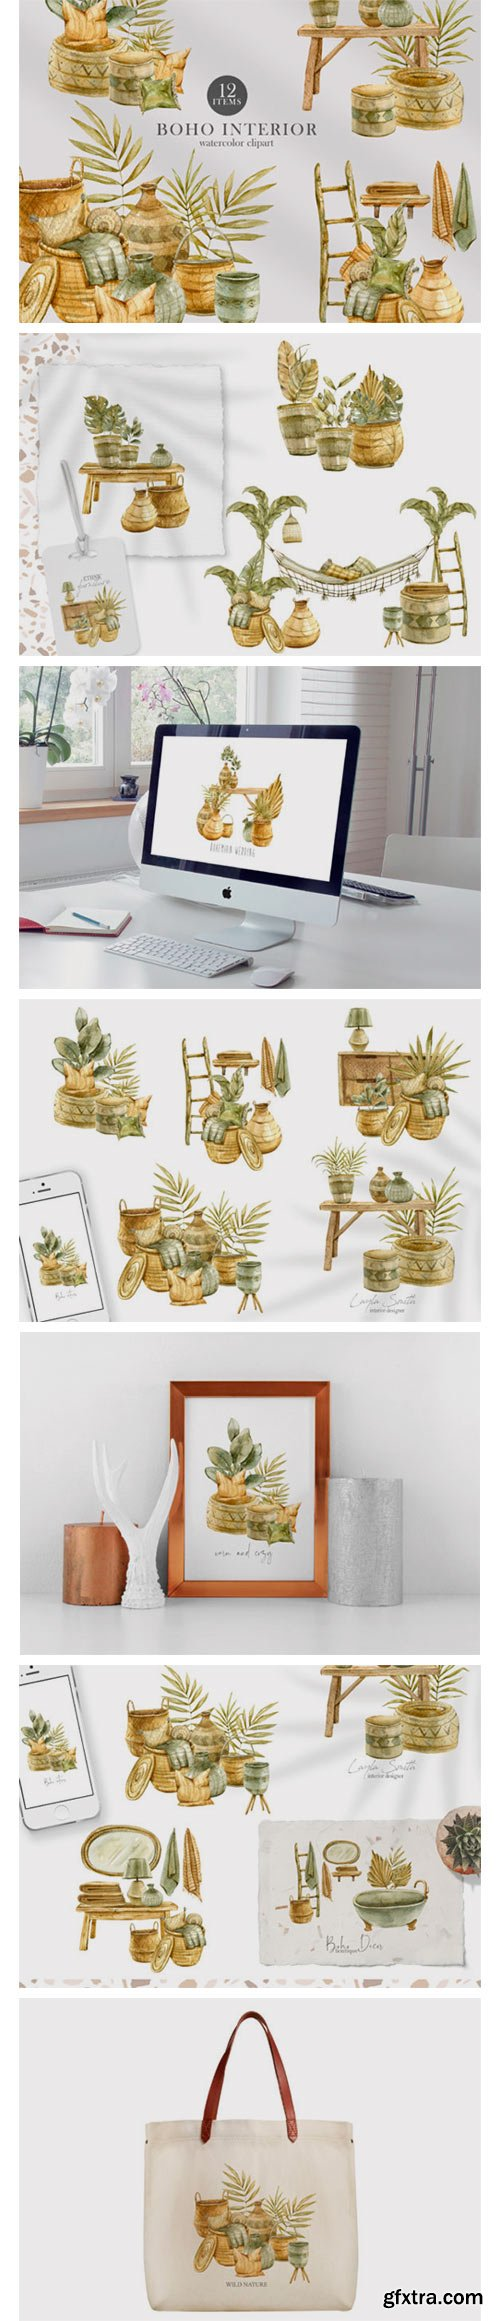 Watercolor Boho Interior Decor Clipart 7551800